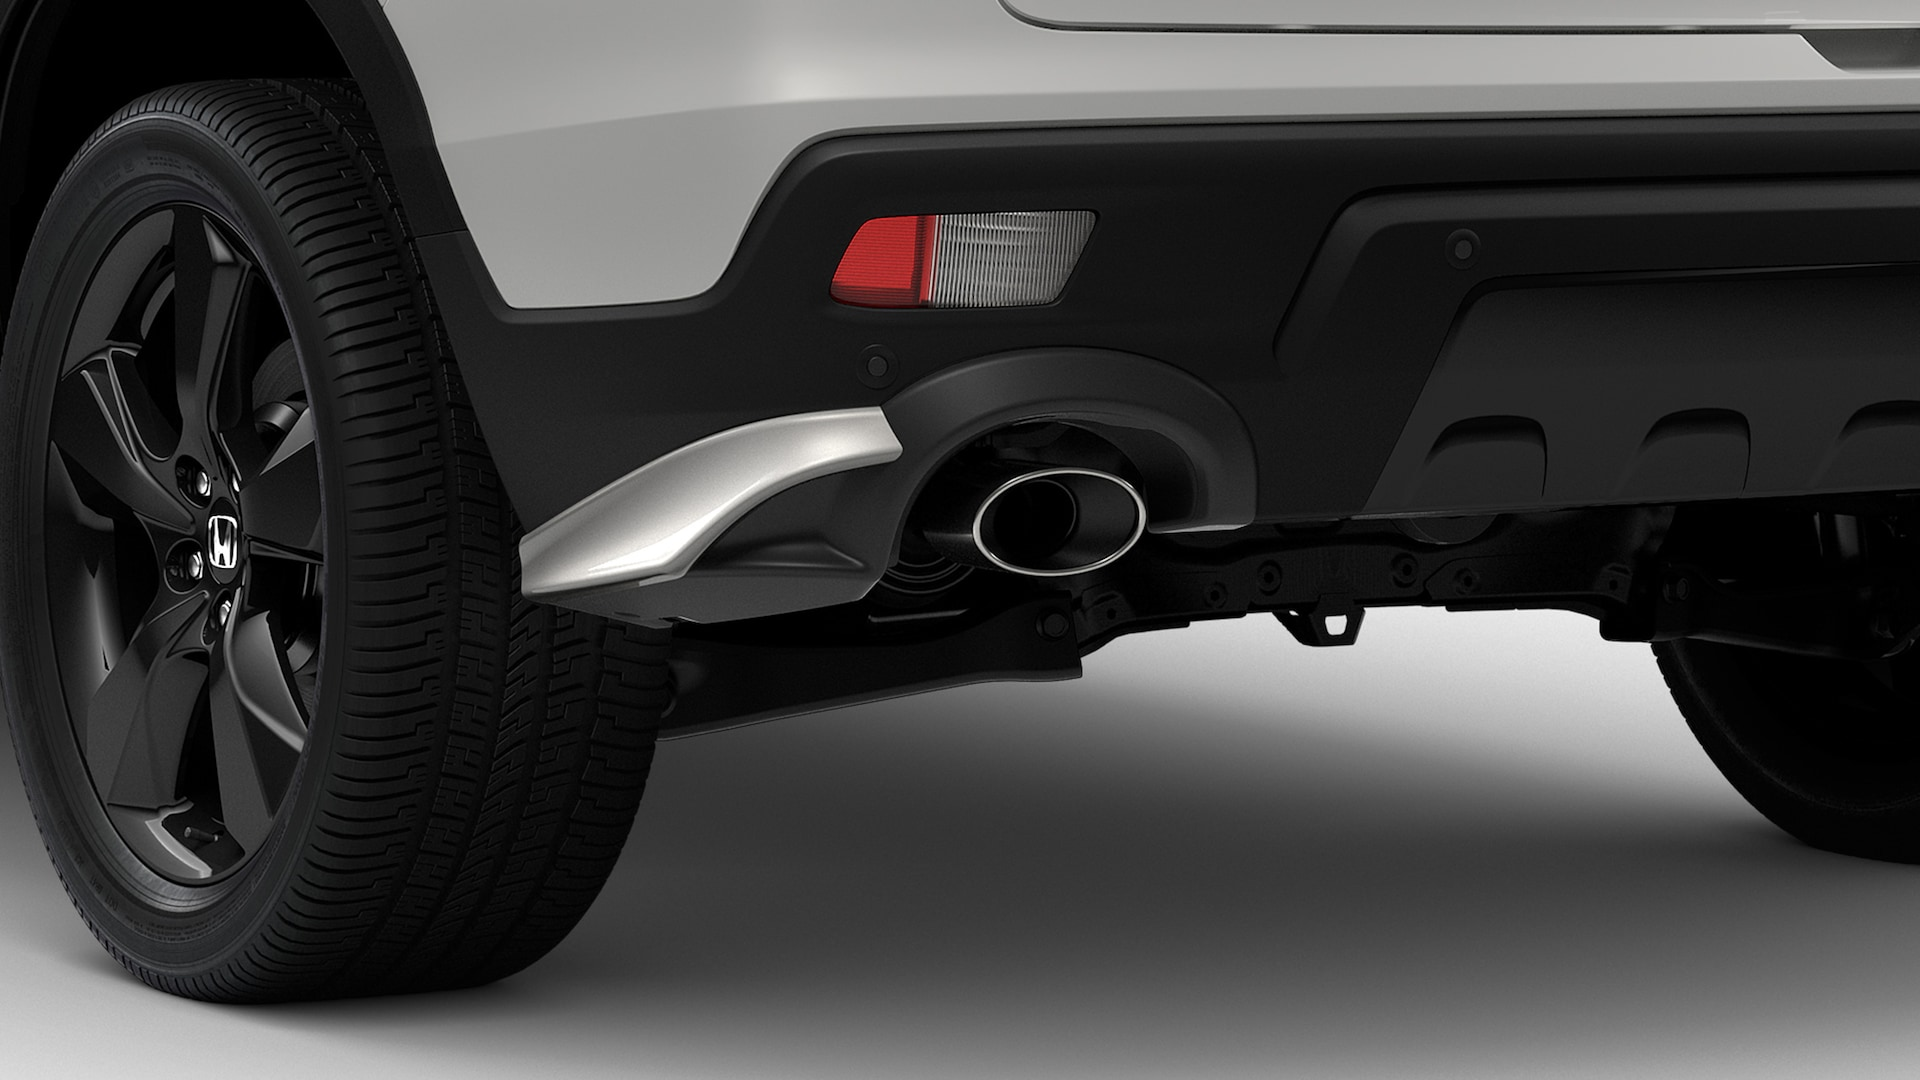 Detail of accessory rear underbody spoiler on the 2021 Honda Passport.